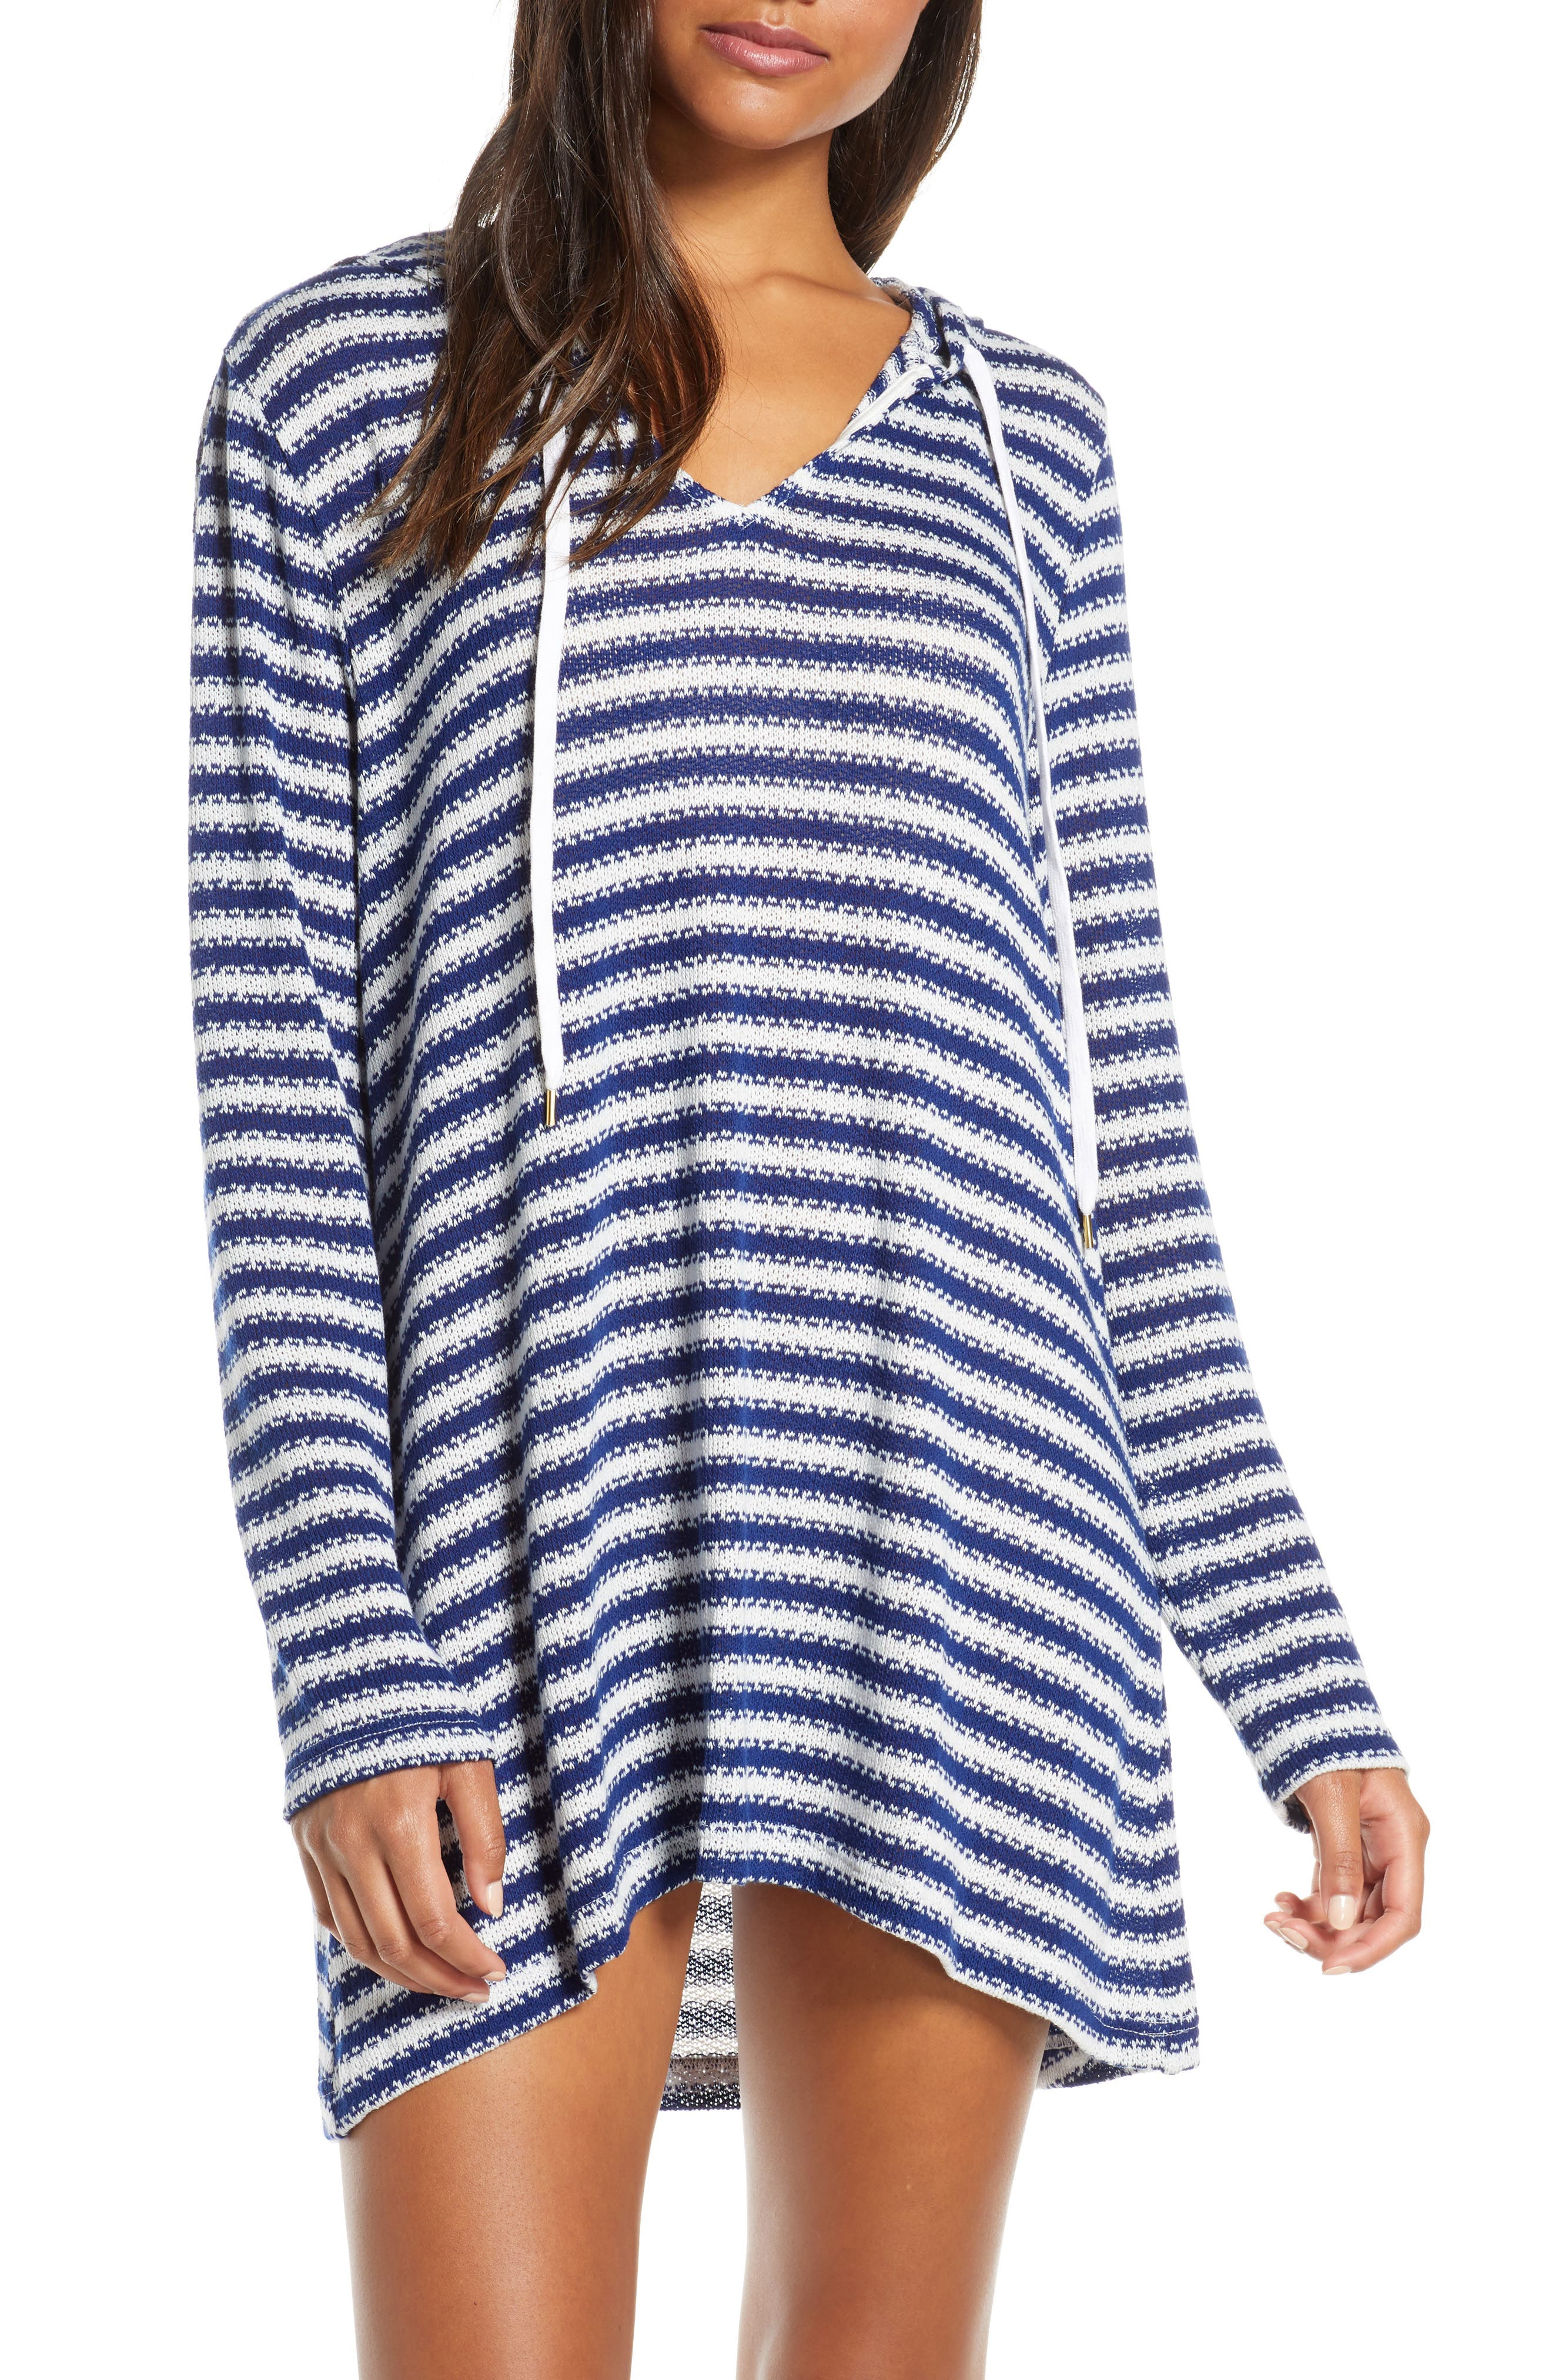 La Blanca Slouchy Hooded Sweater Cover-Up Tunic (Nordstrom Exclusive)